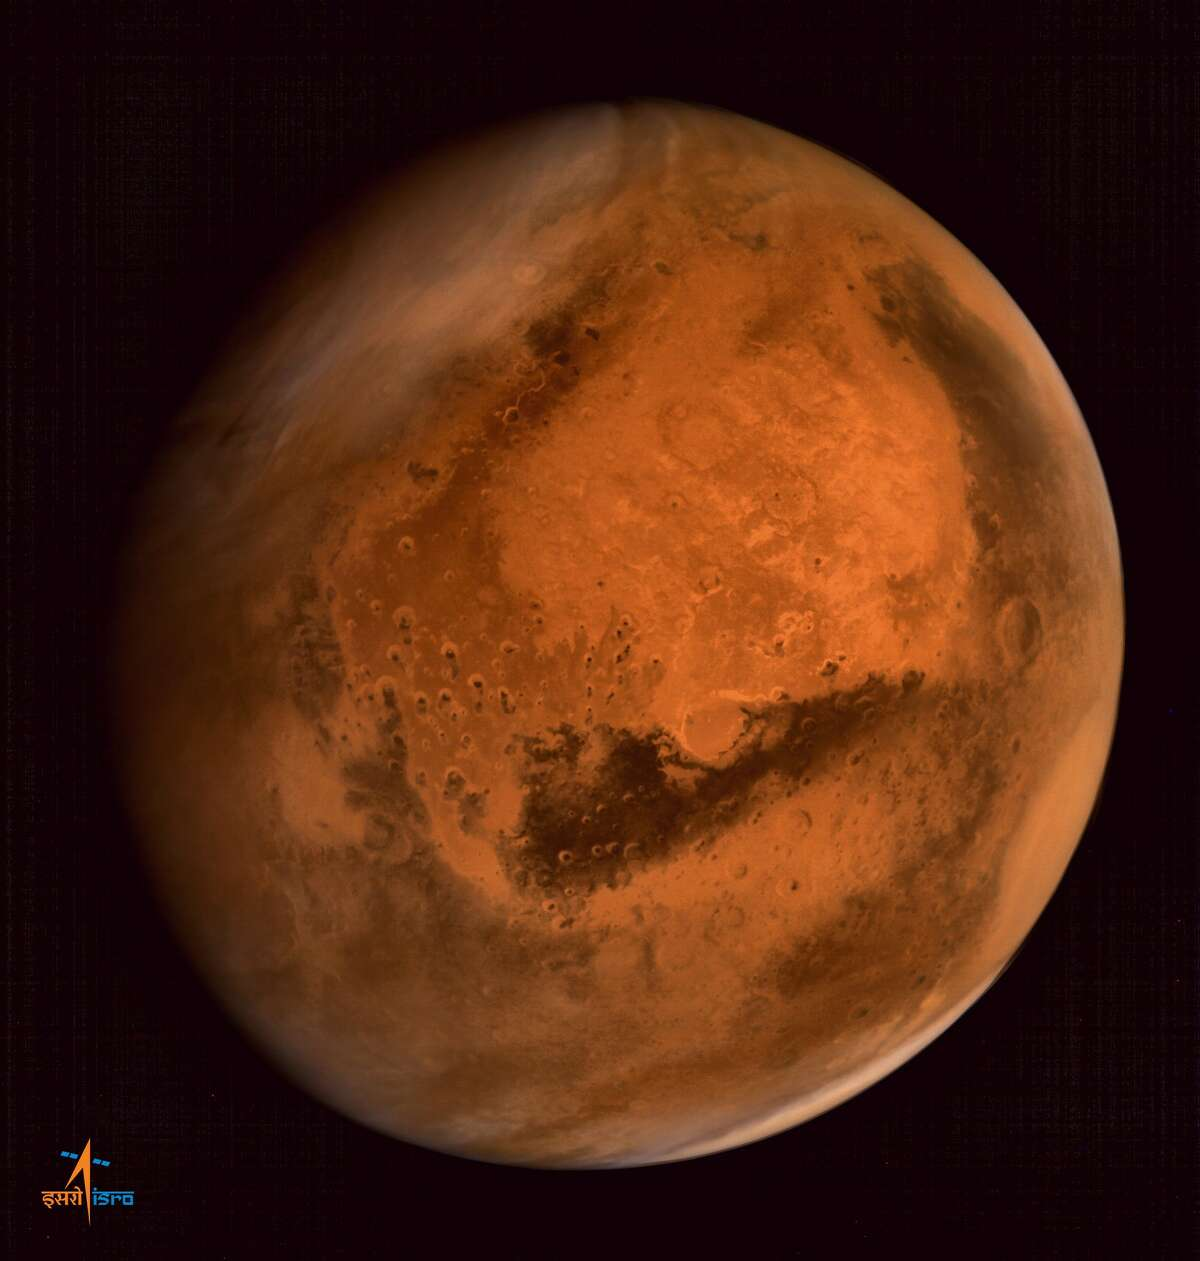 """This file handout photograph received from the Indian Space Research Organisation (ISRO) on September 30, 2014, shows the planet Mars in an image taken by the ISRO Mars Orbiter Mission (MOM) spacecraft. A multi-billion-dollar robot dispatched to Mars to search for life must steer clear of promising """"hot spots"""" for fear of spreading microbes from Earth, NASA project scientists said October 1, 2015. AFP PHOTO / ISRO"""